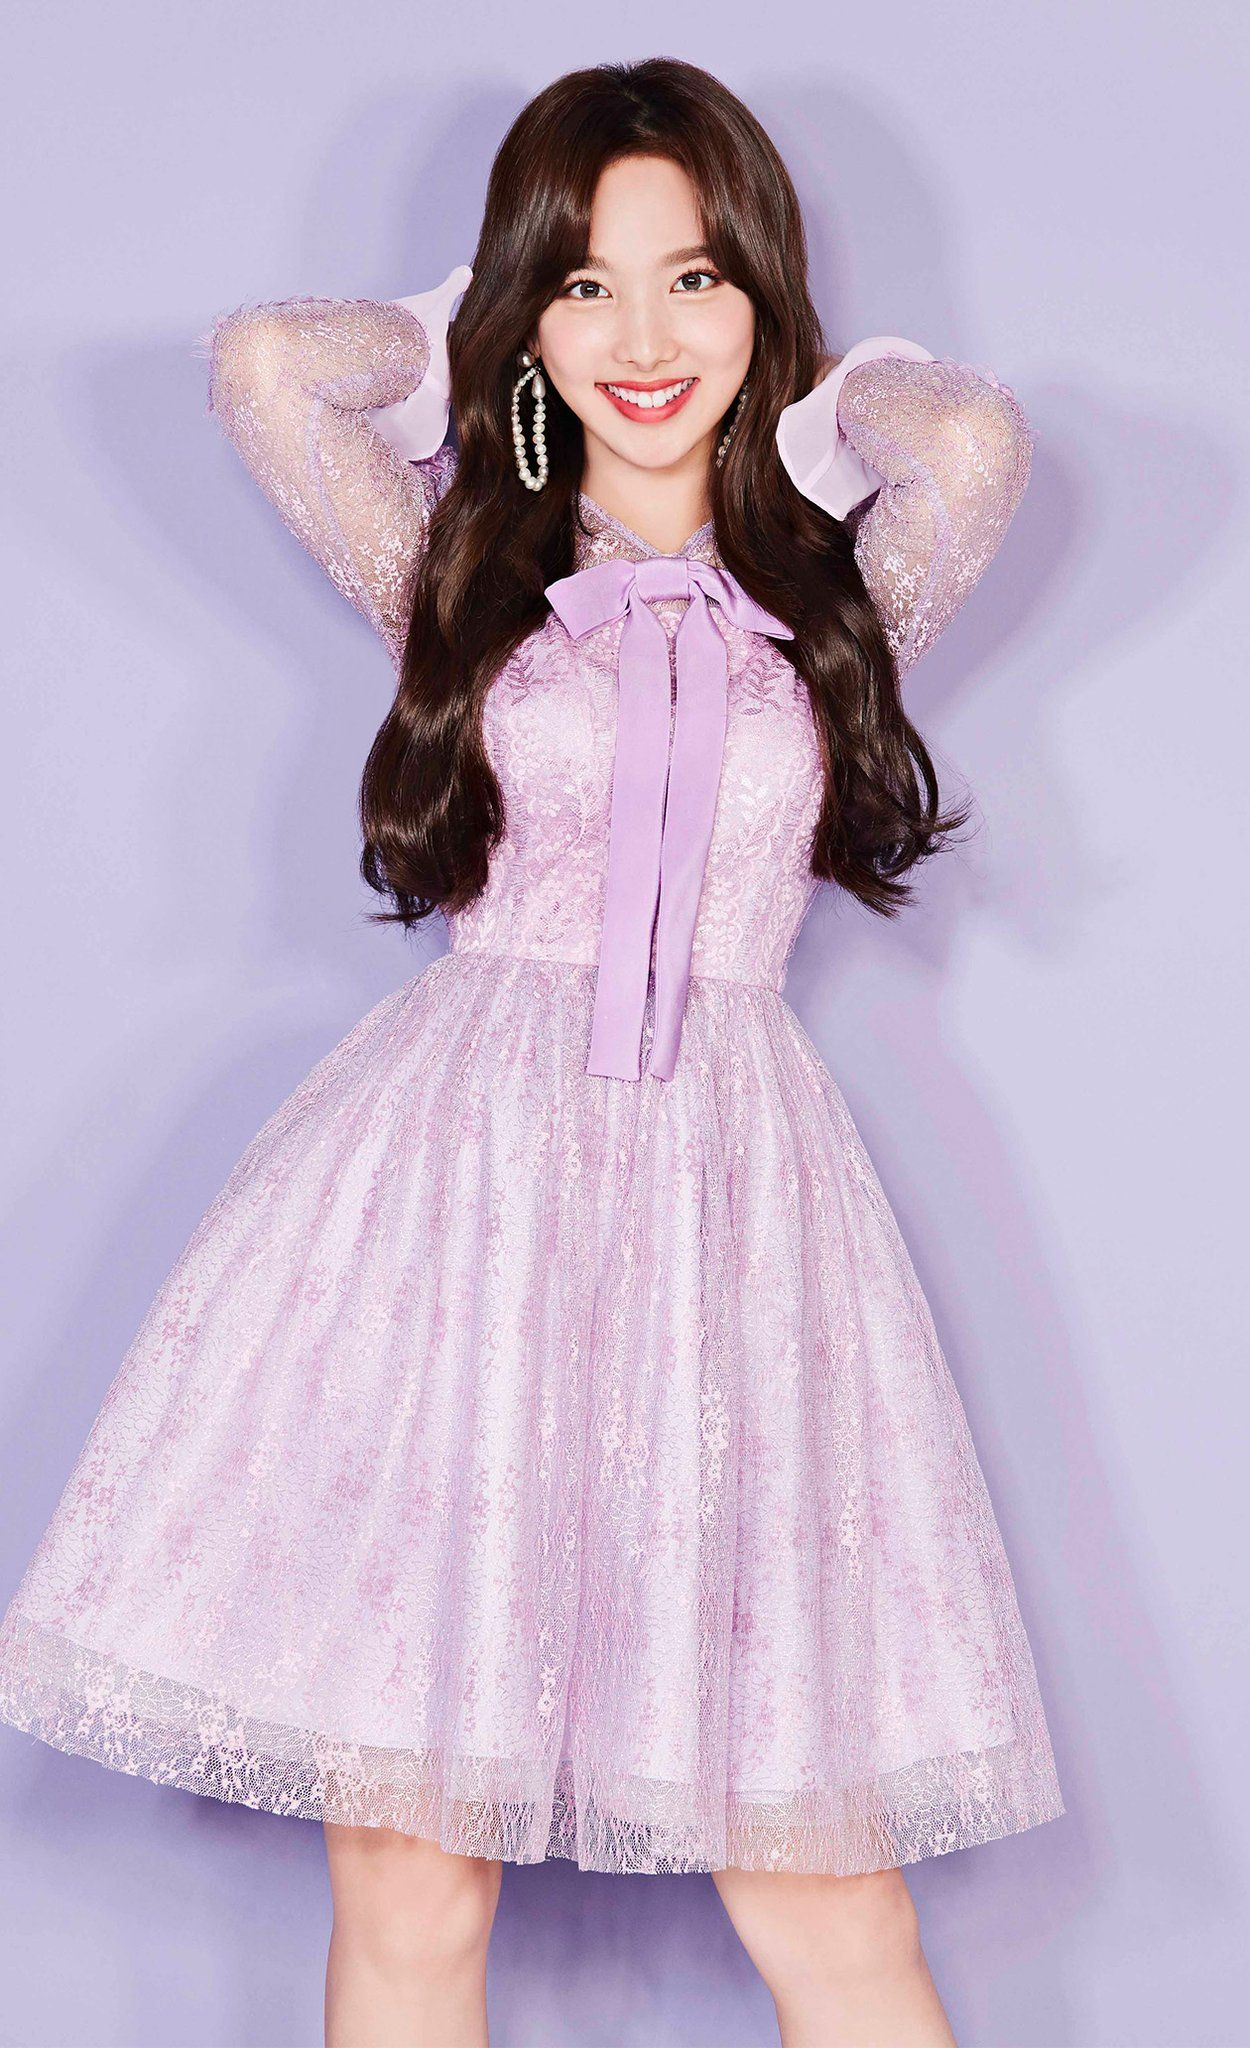 nayeon 190110 TWICE JAPAN OFFICIAL NEW PROFILE | Idols in